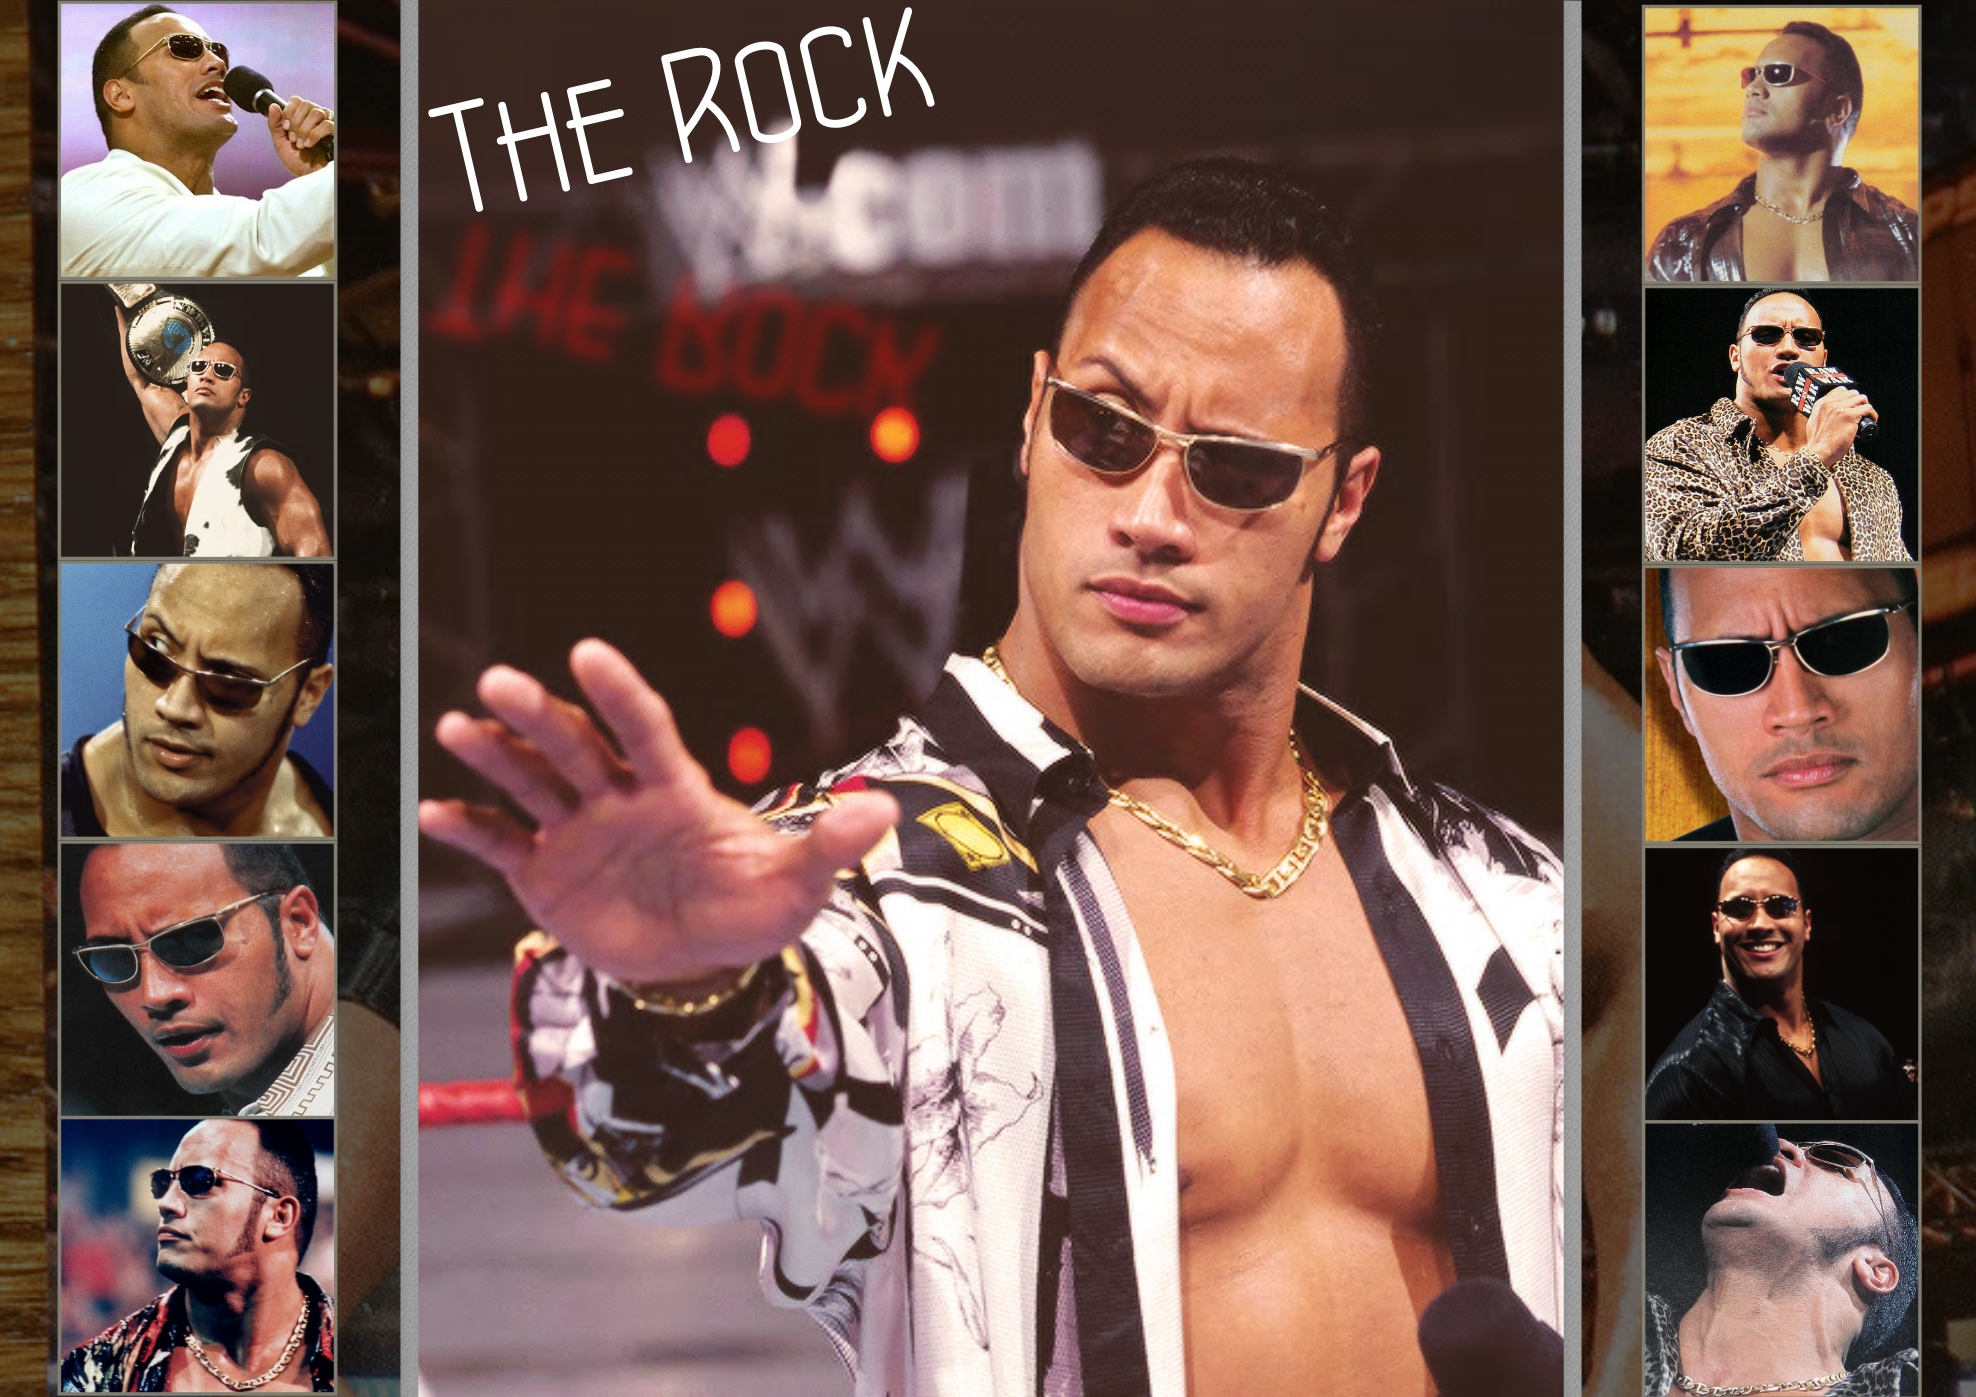 Dwayne The Rock Johnson Images The Rock Wallpaper Hd Wallpaper And